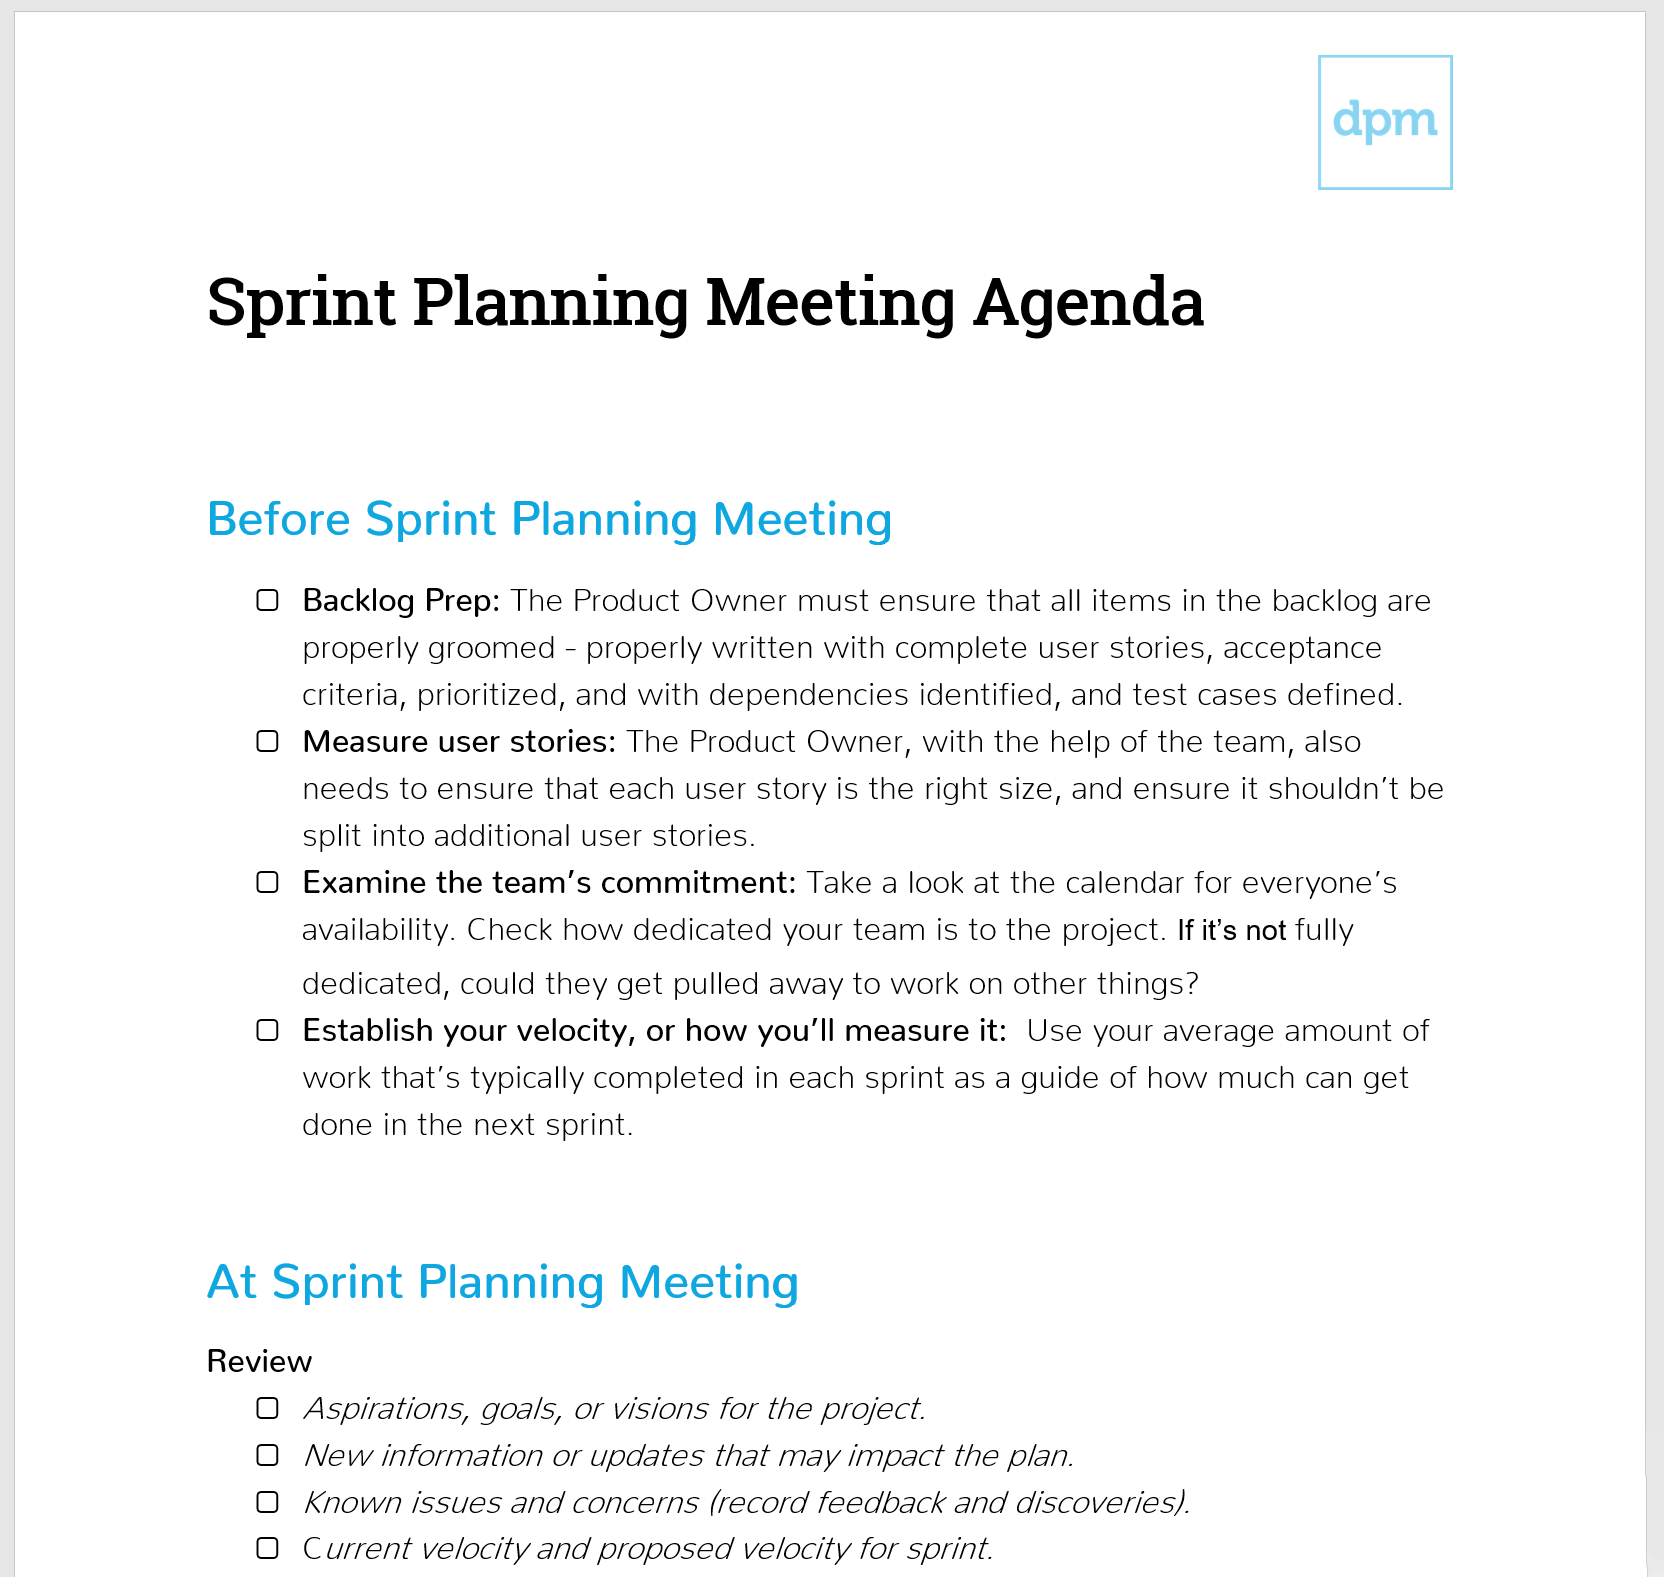 How To Run A Sprint Planning Meeting Like A Boss Meeting Agenda The Digital Project Manager In 2020 Meeting Agenda Agenda Template Meeting Planning